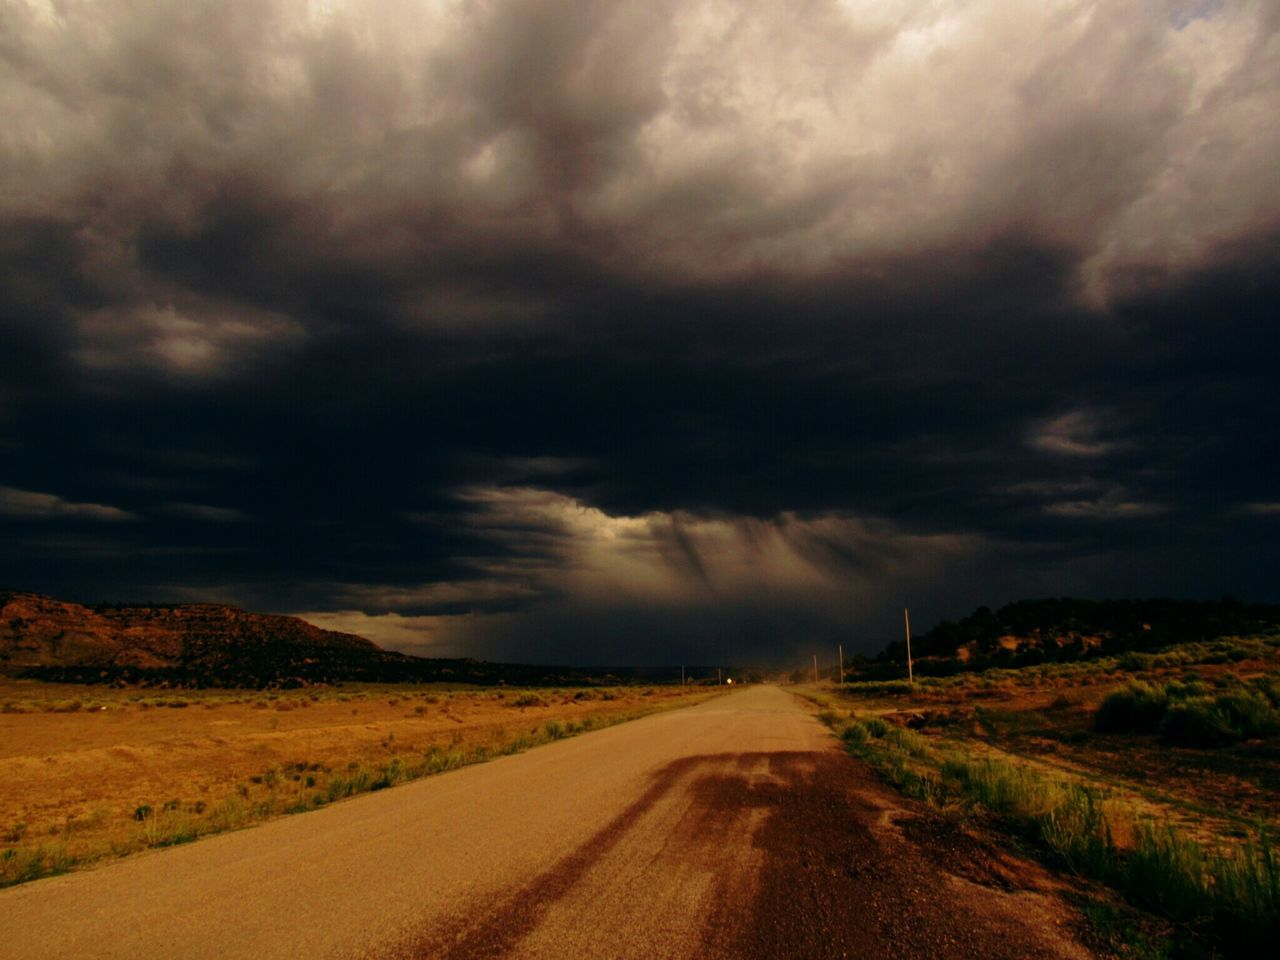 Dirtroad,rain,clouds